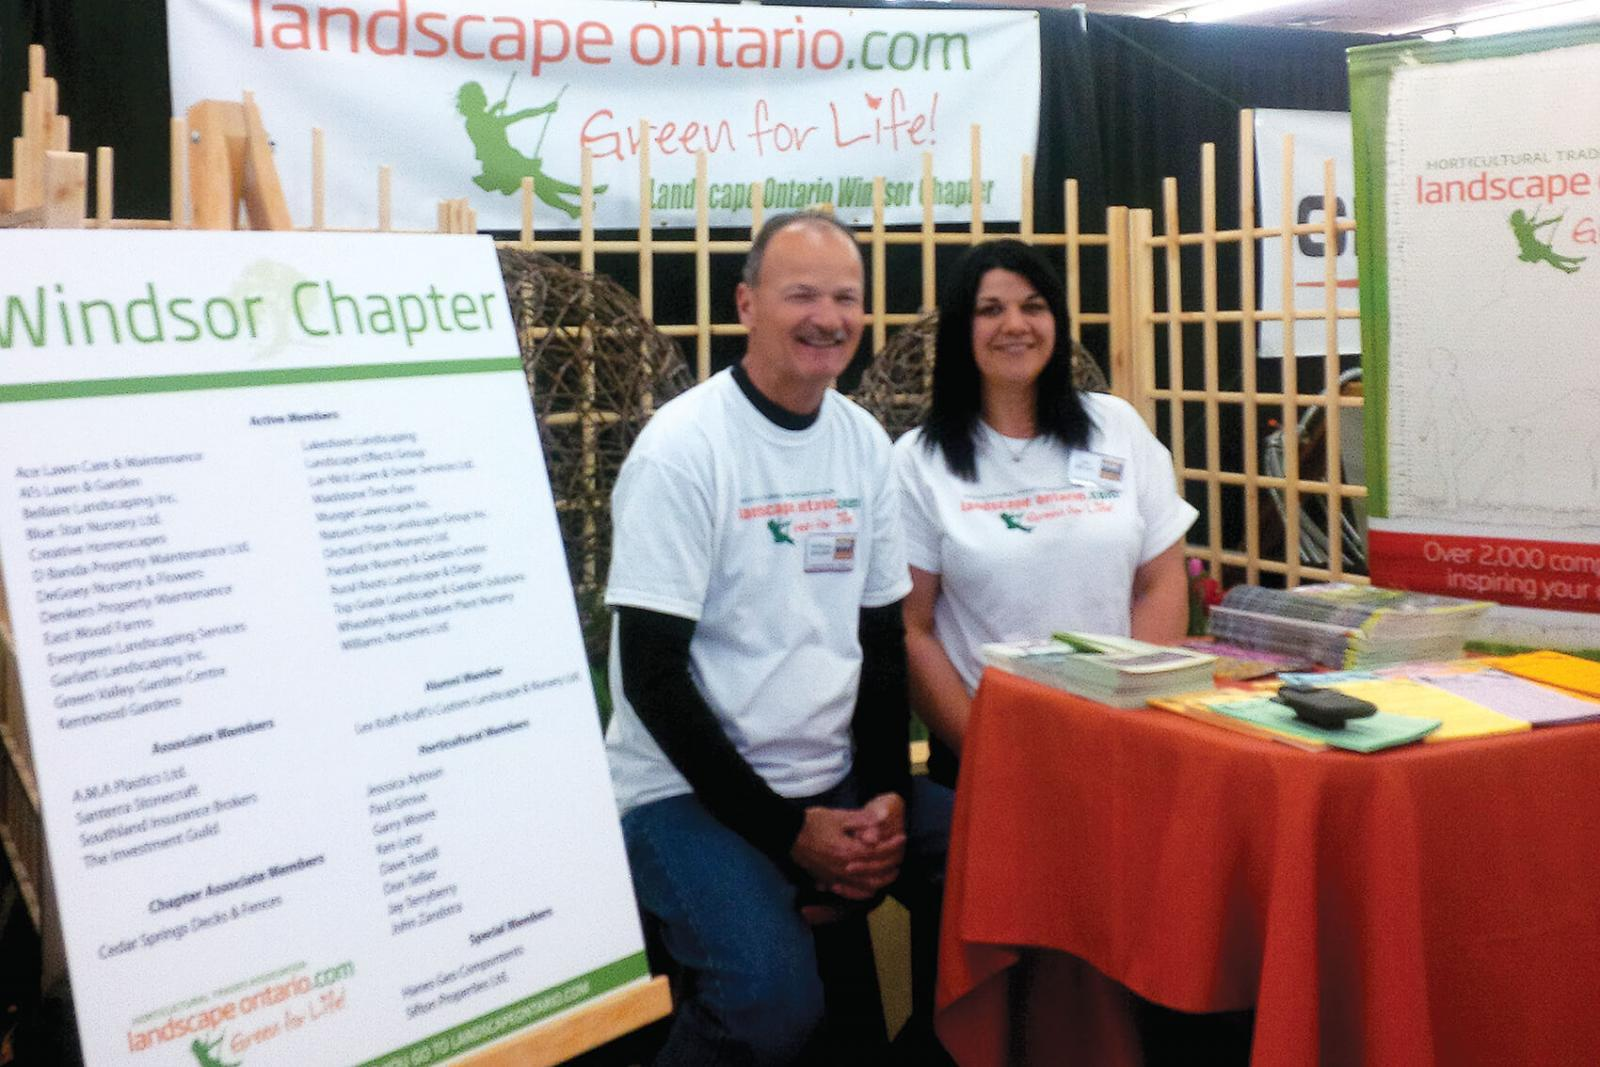 Don Tellier and Jay Rivait handle booth duties for the Windsor Chapter.